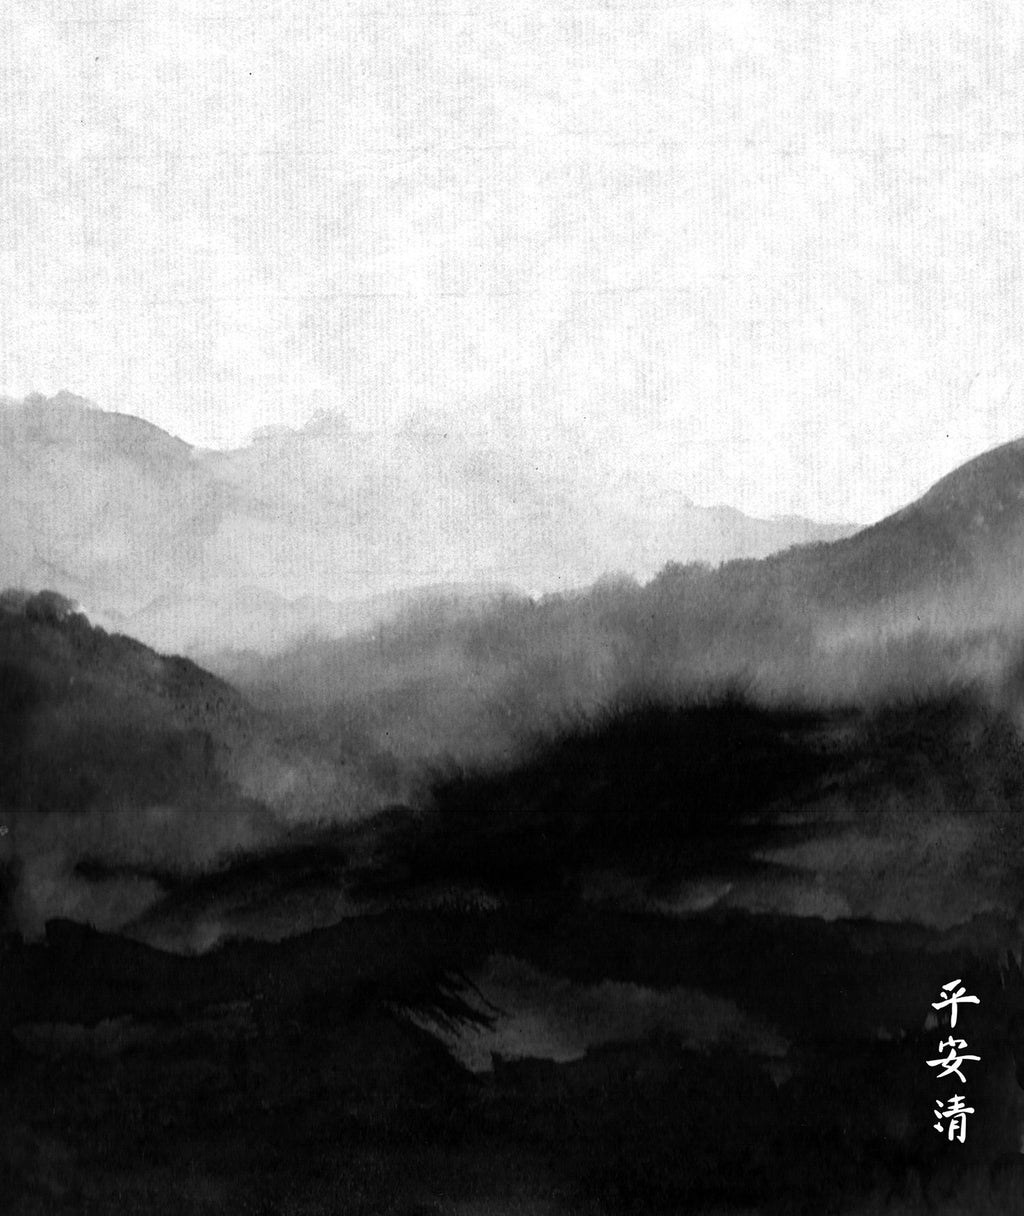 Minimalist Painted Mountains Wallpaper Mural Black and White M9255